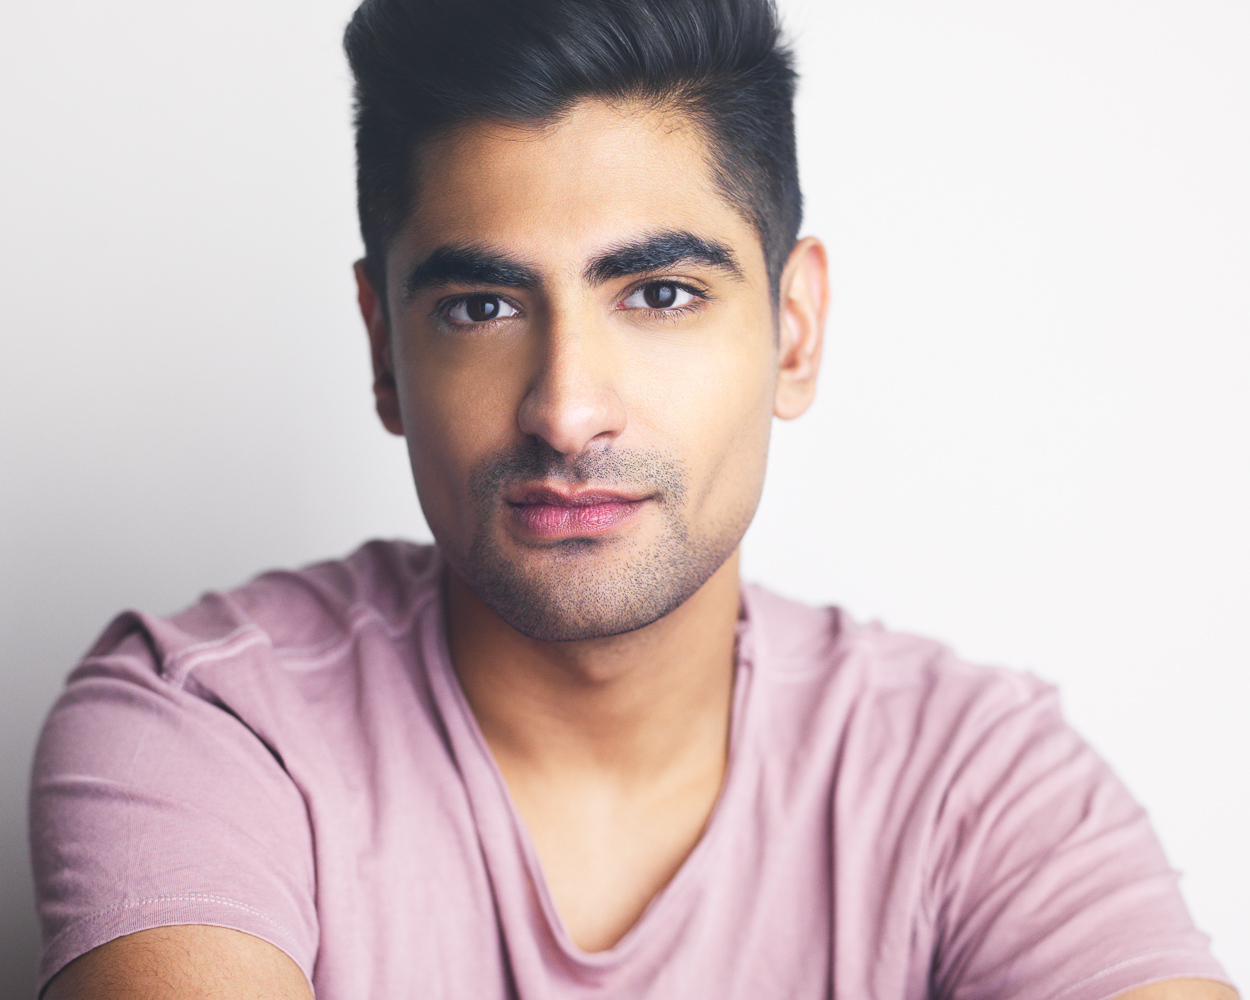 VARDAAN ARORA - Ending the year with a bang! Congrats to client Vardaan Arora for booking ABC's DECEPTION, his second major network booking in the past month. Can't wait to see what 2018 has in store for this guy!